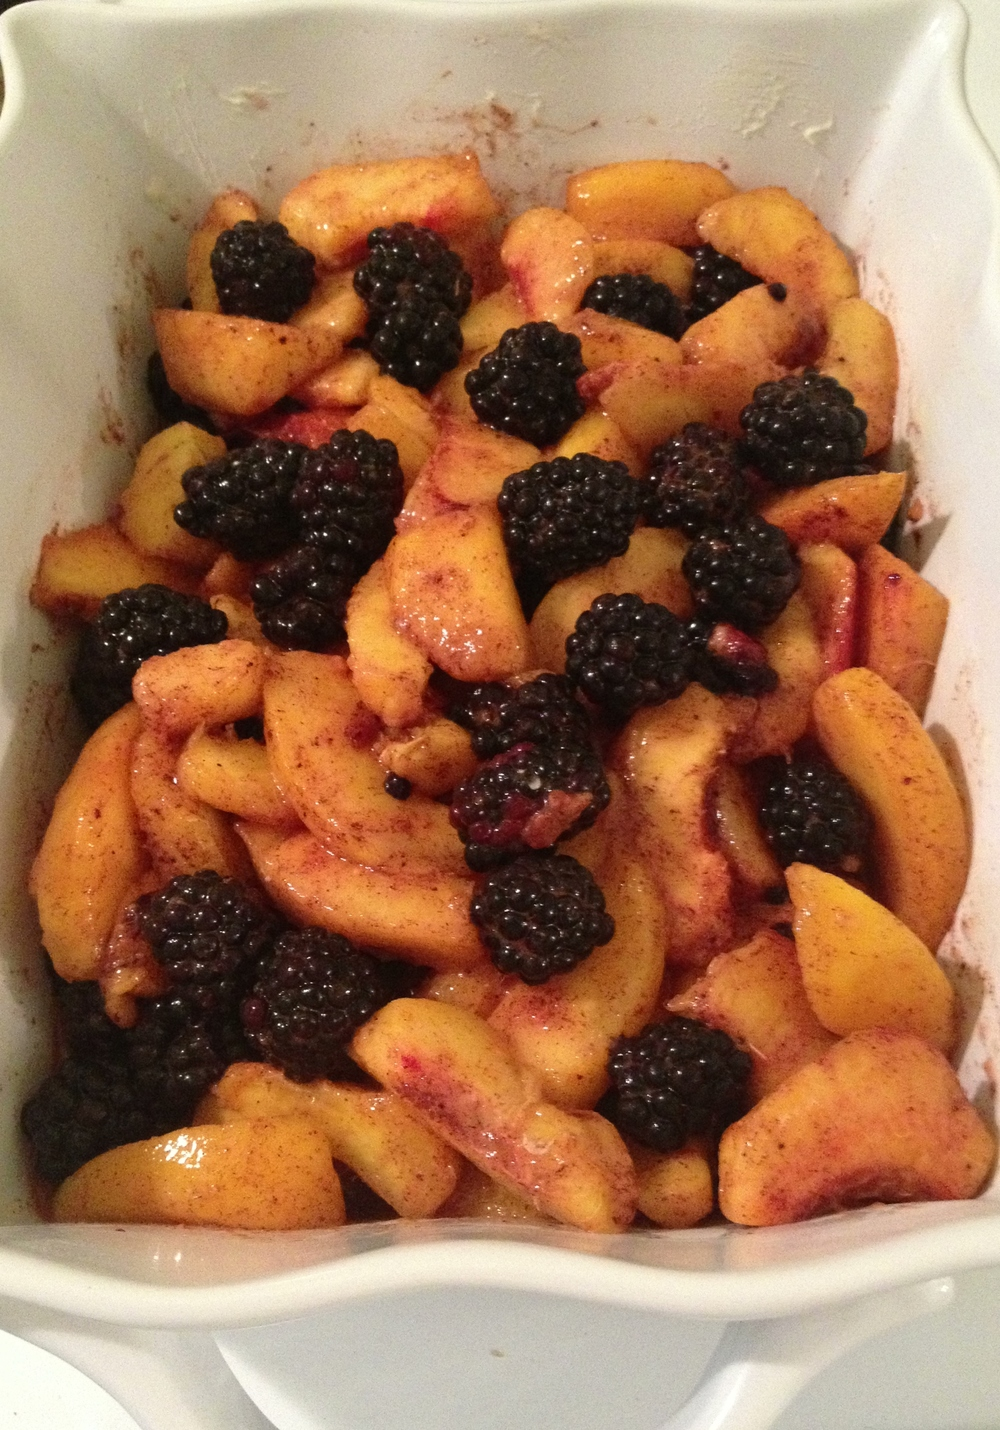 Blackberries, peaches, and spices